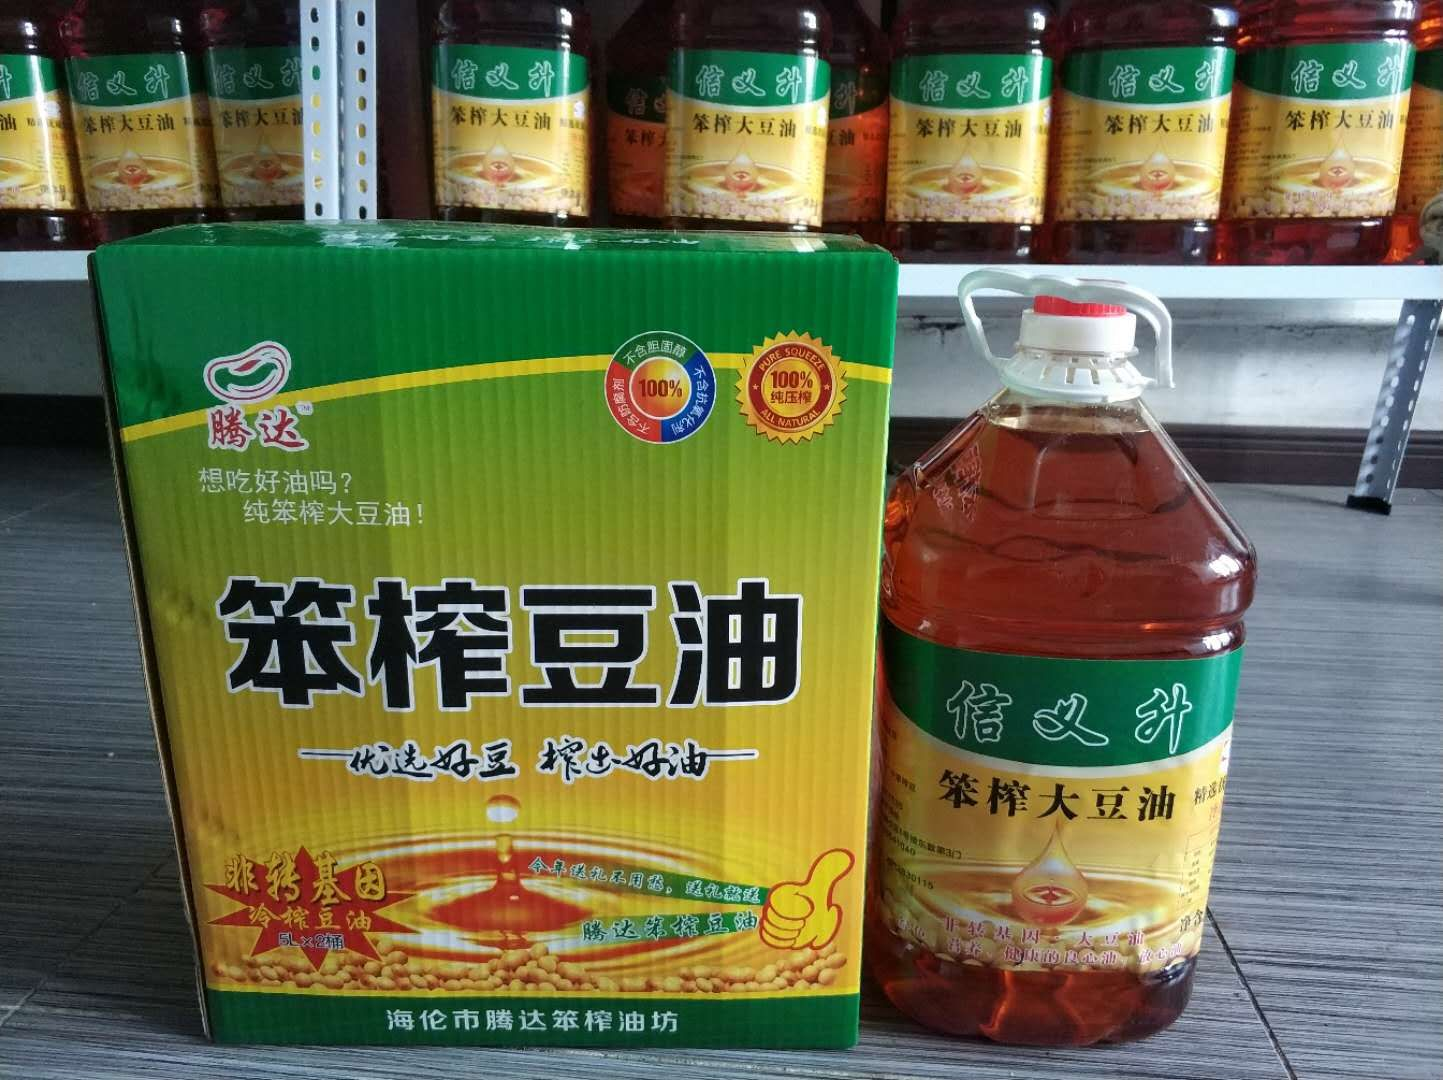 Northeast specialty pure benzha soybean oil non transgenic soybean pressing without any addition of healthy edible oil 5L